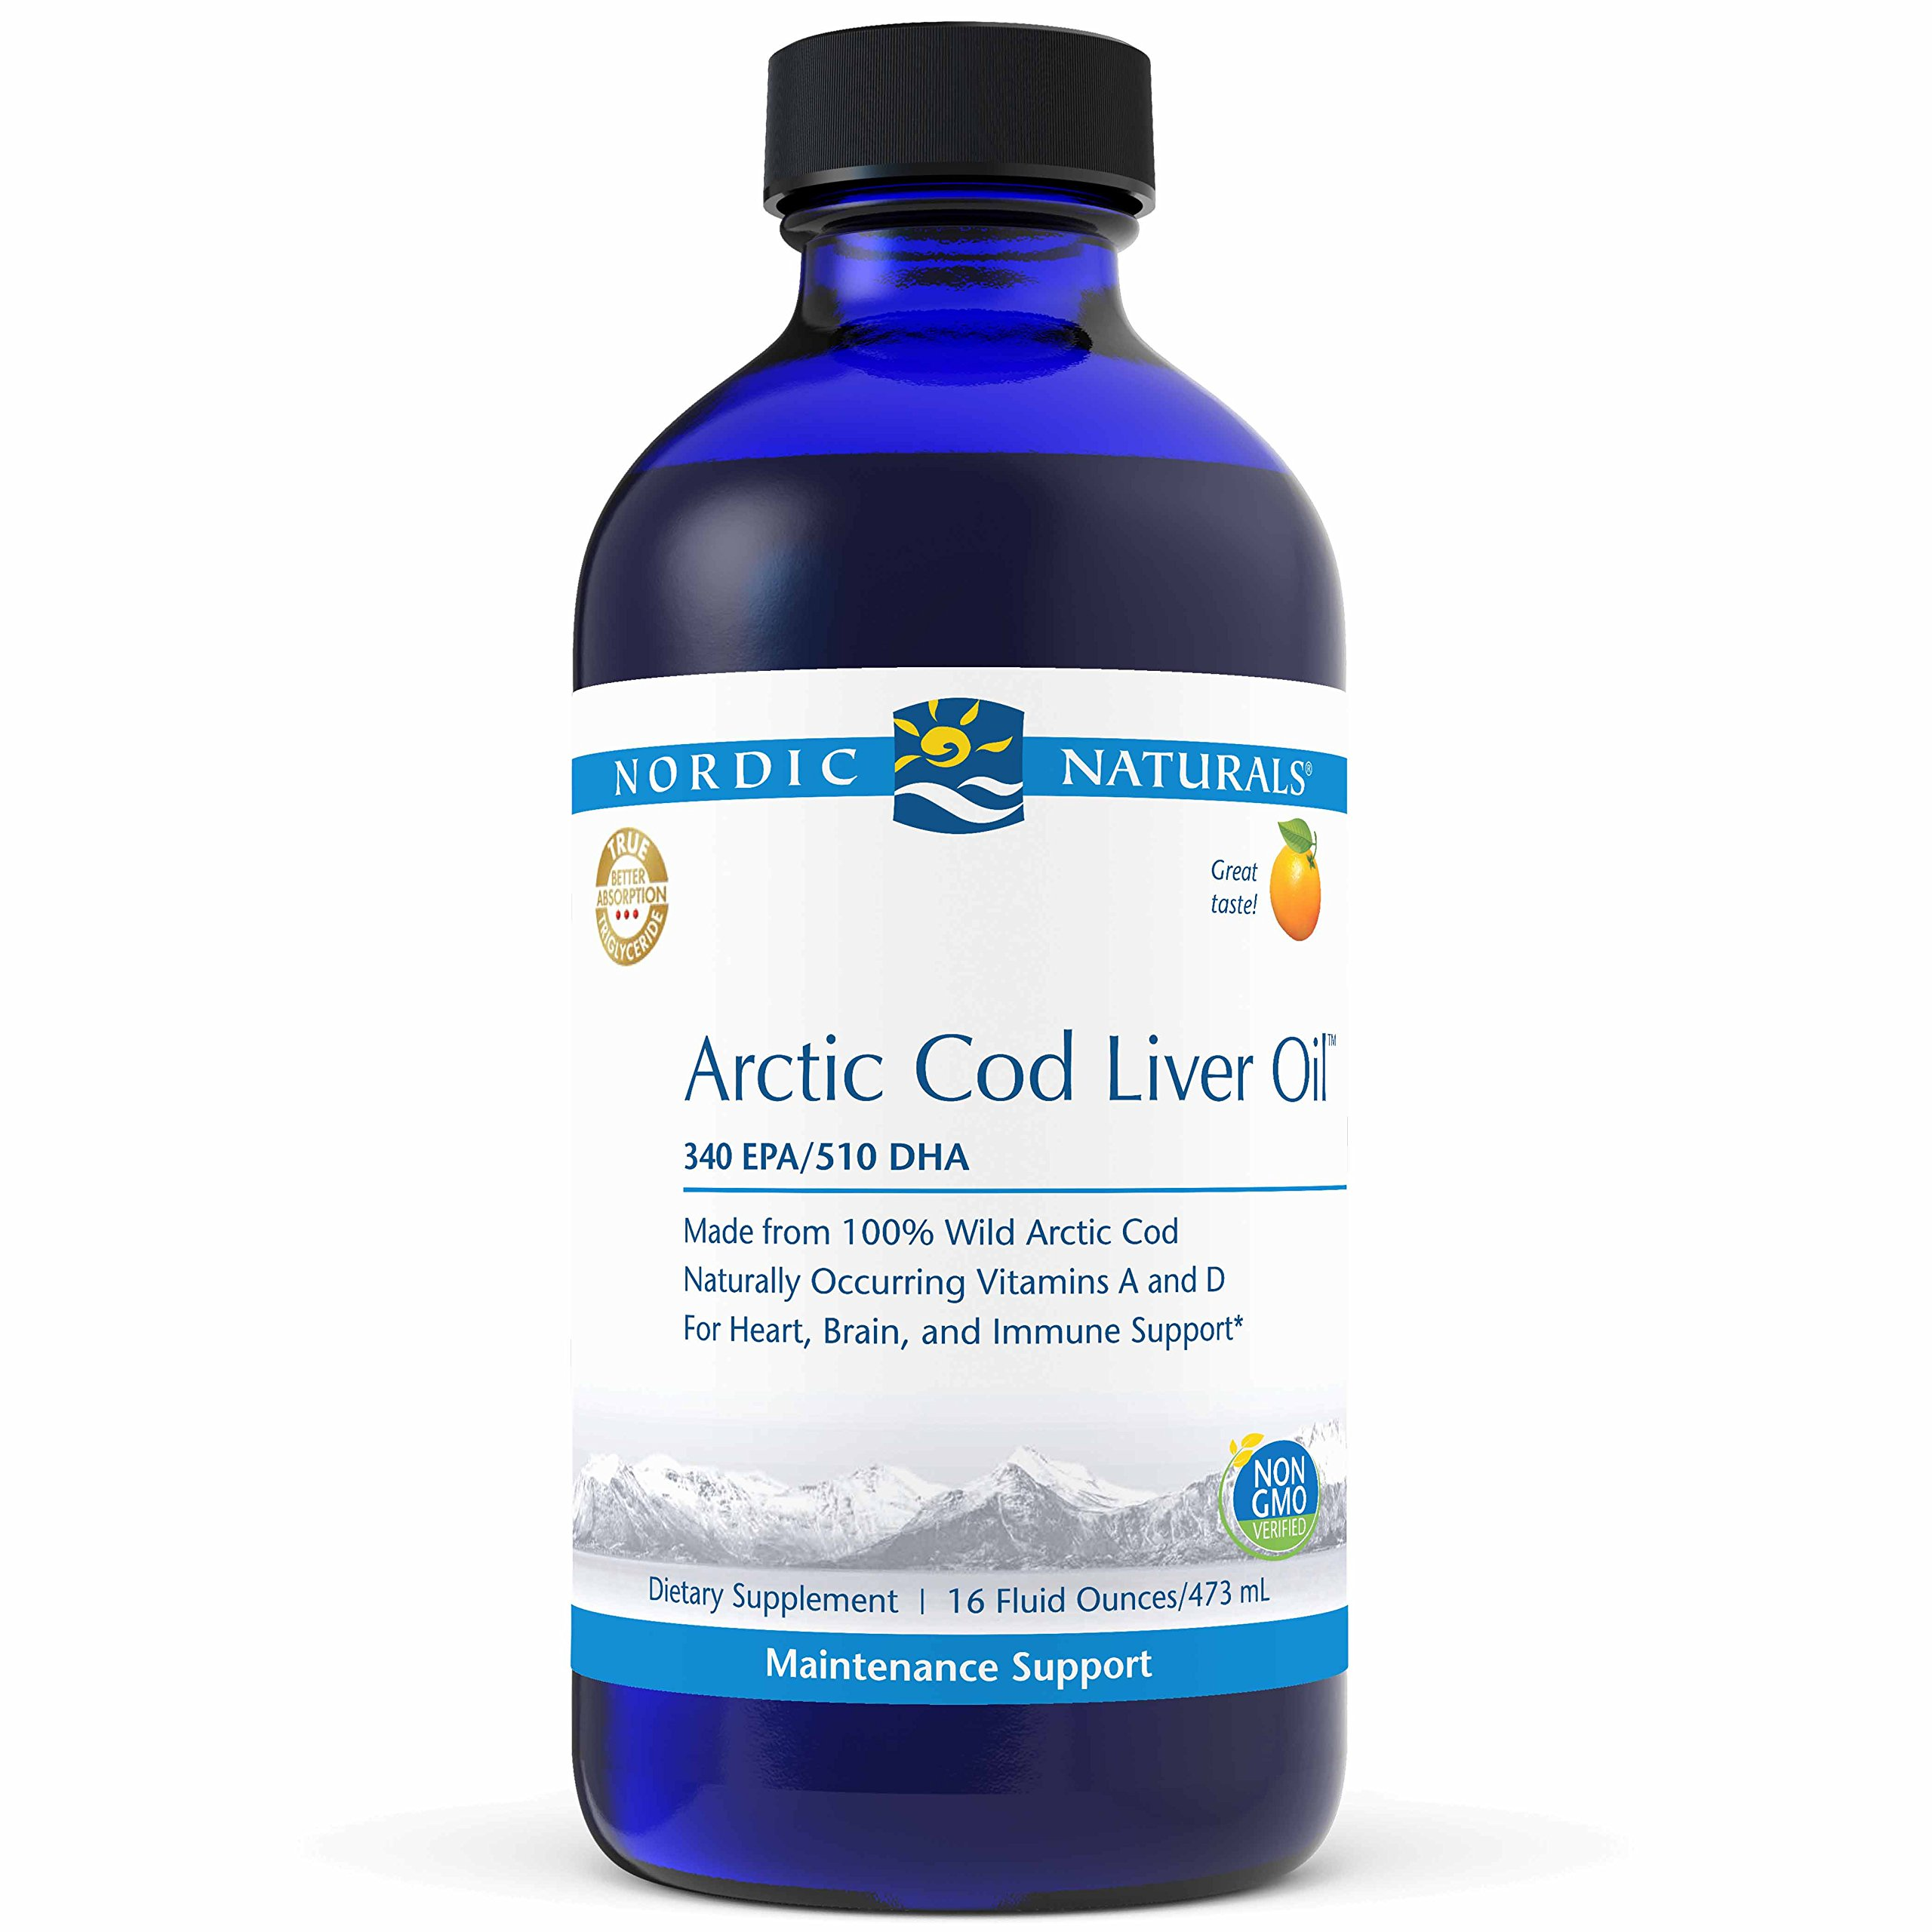 Nordic Naturals Pro Arctic Cod Liver Oil Liquid - 100% Wild Arctic Cod Liver Oil, 340 mg EPA, 510 mg DHA, Support for Cardiovascular, Neurological, and Immune Health, Orange Flavored, 16 oz.